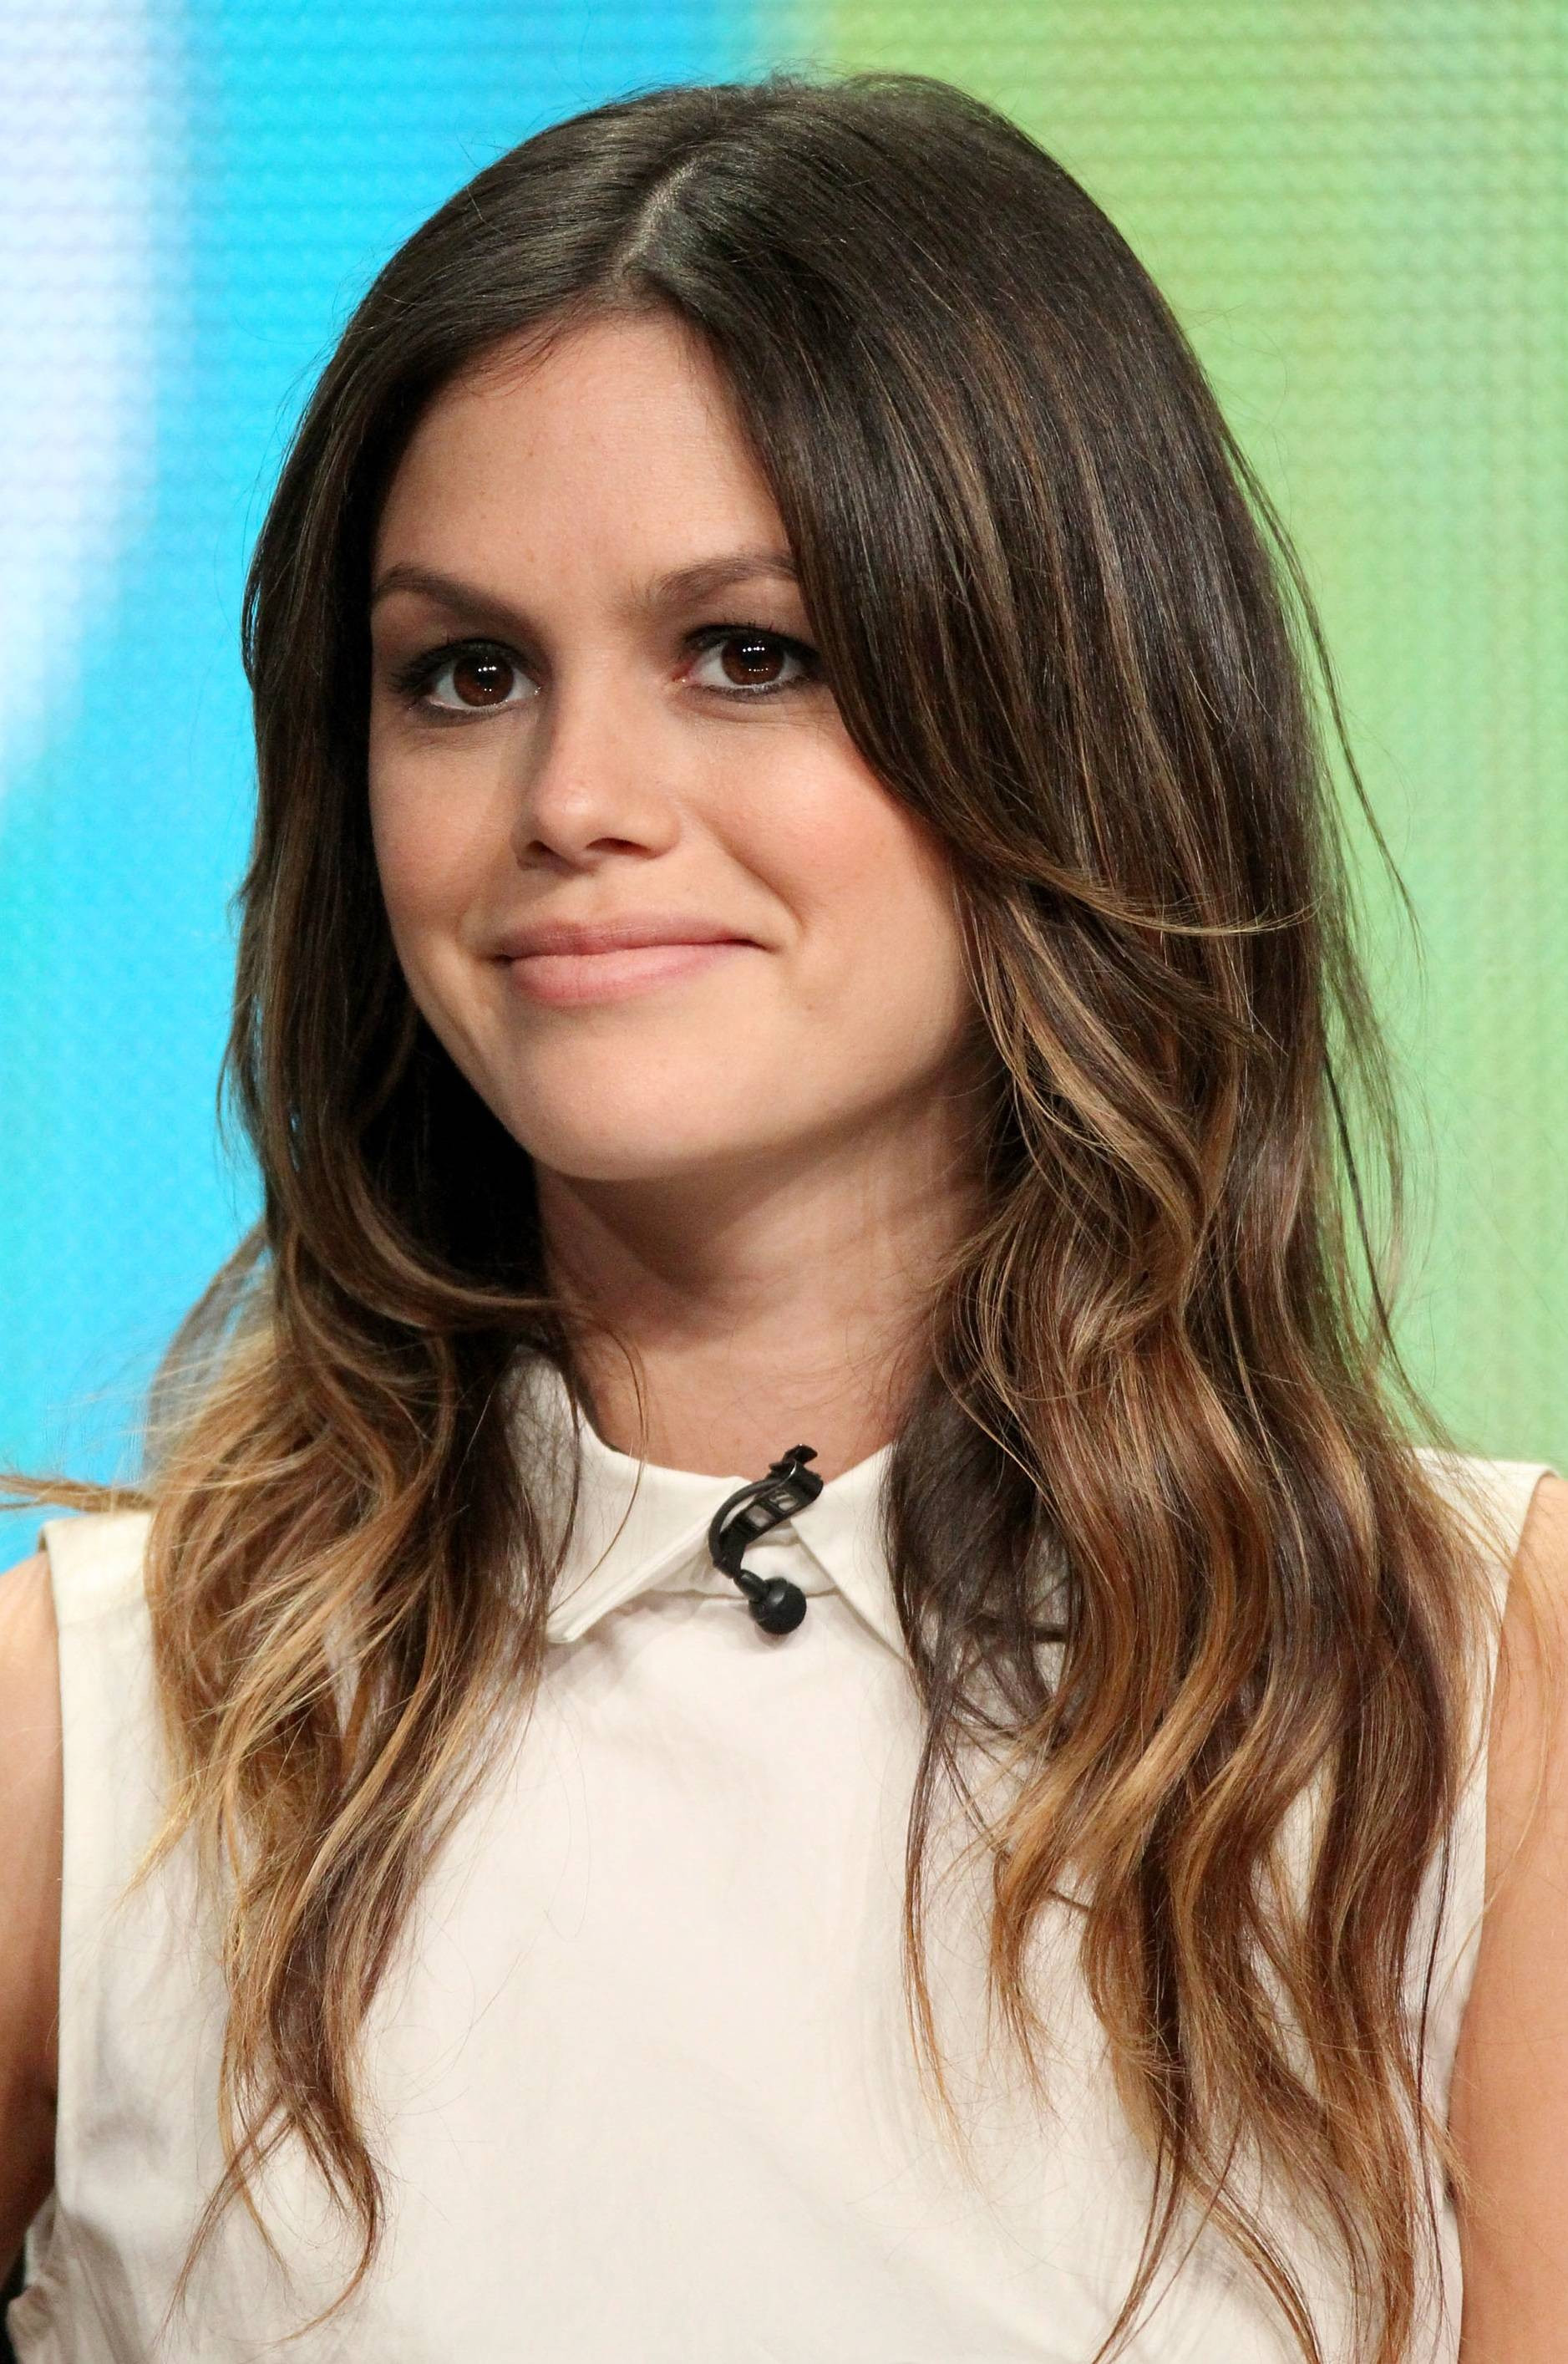 Best ideas about Ombre Hairstyles . Save or Pin Rachel Bilson Now.